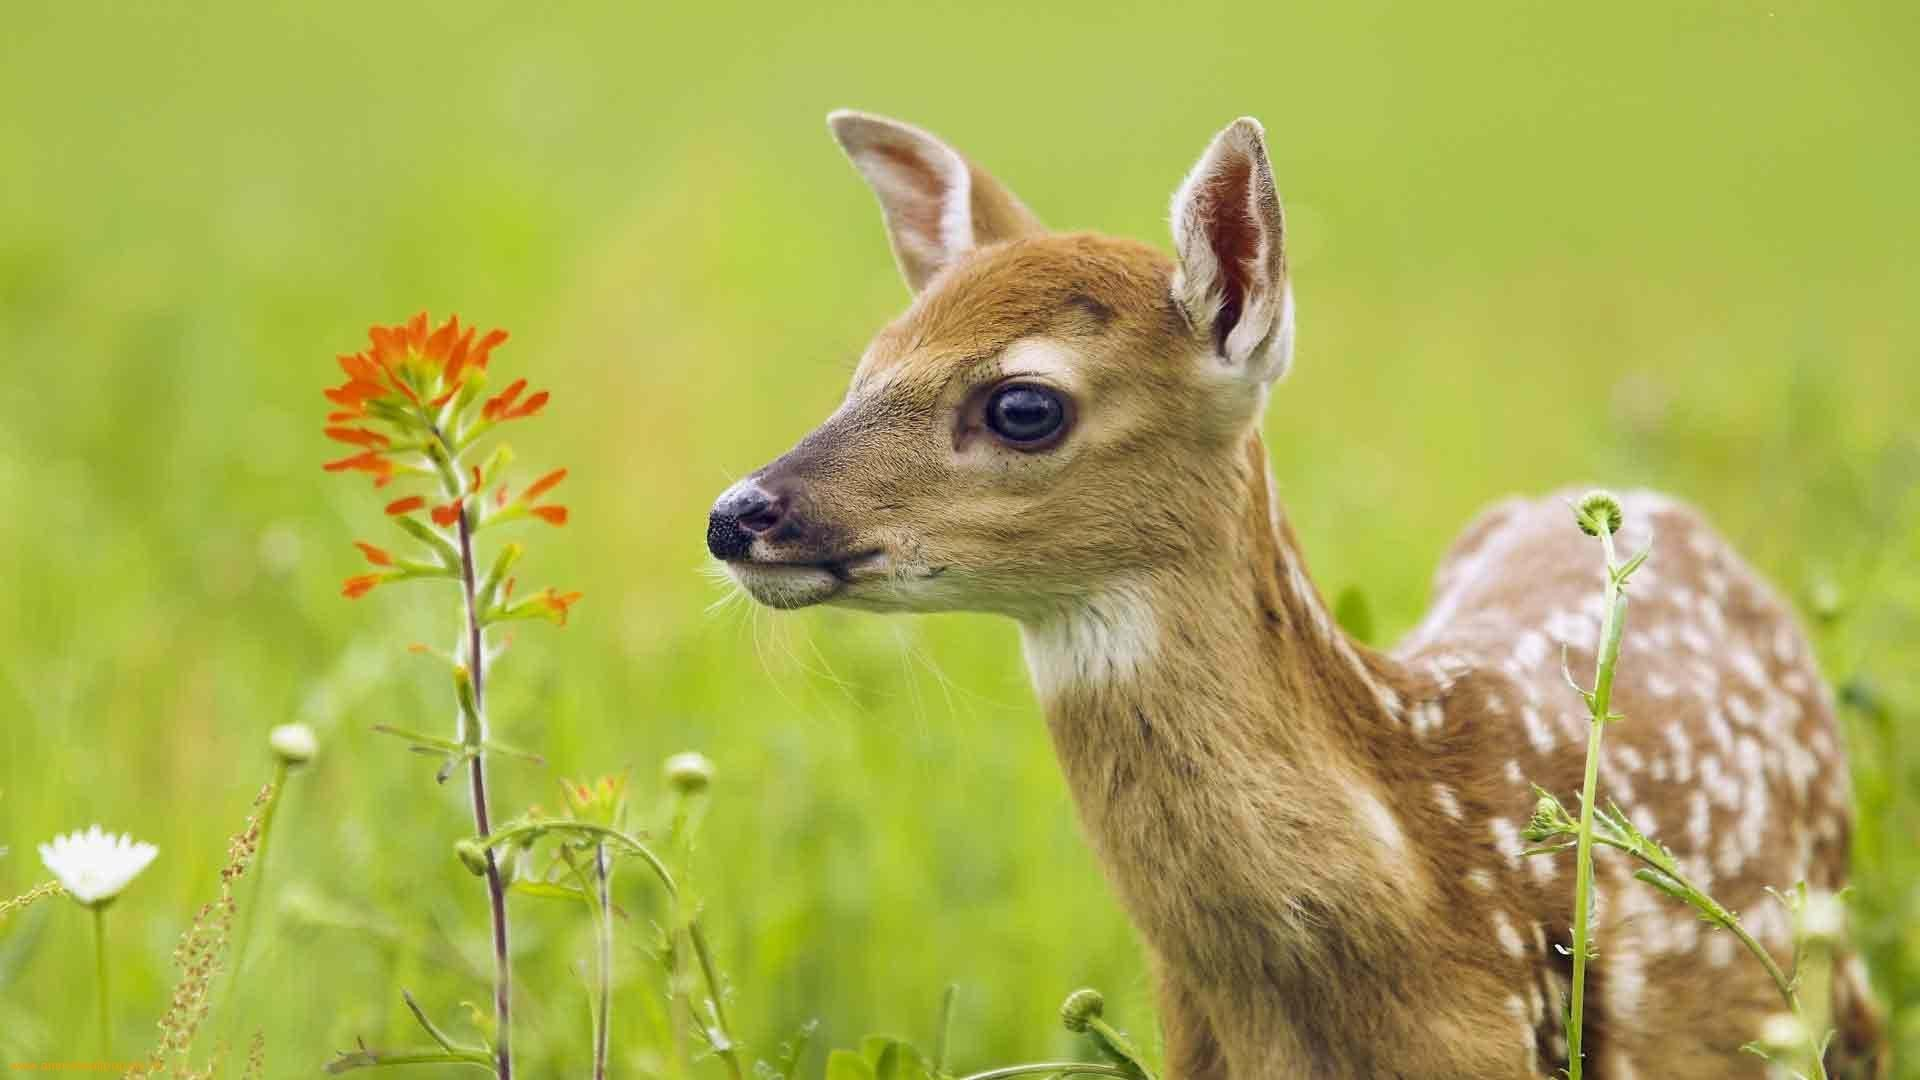 Bambi Deer and a Flower 71.19 Kb